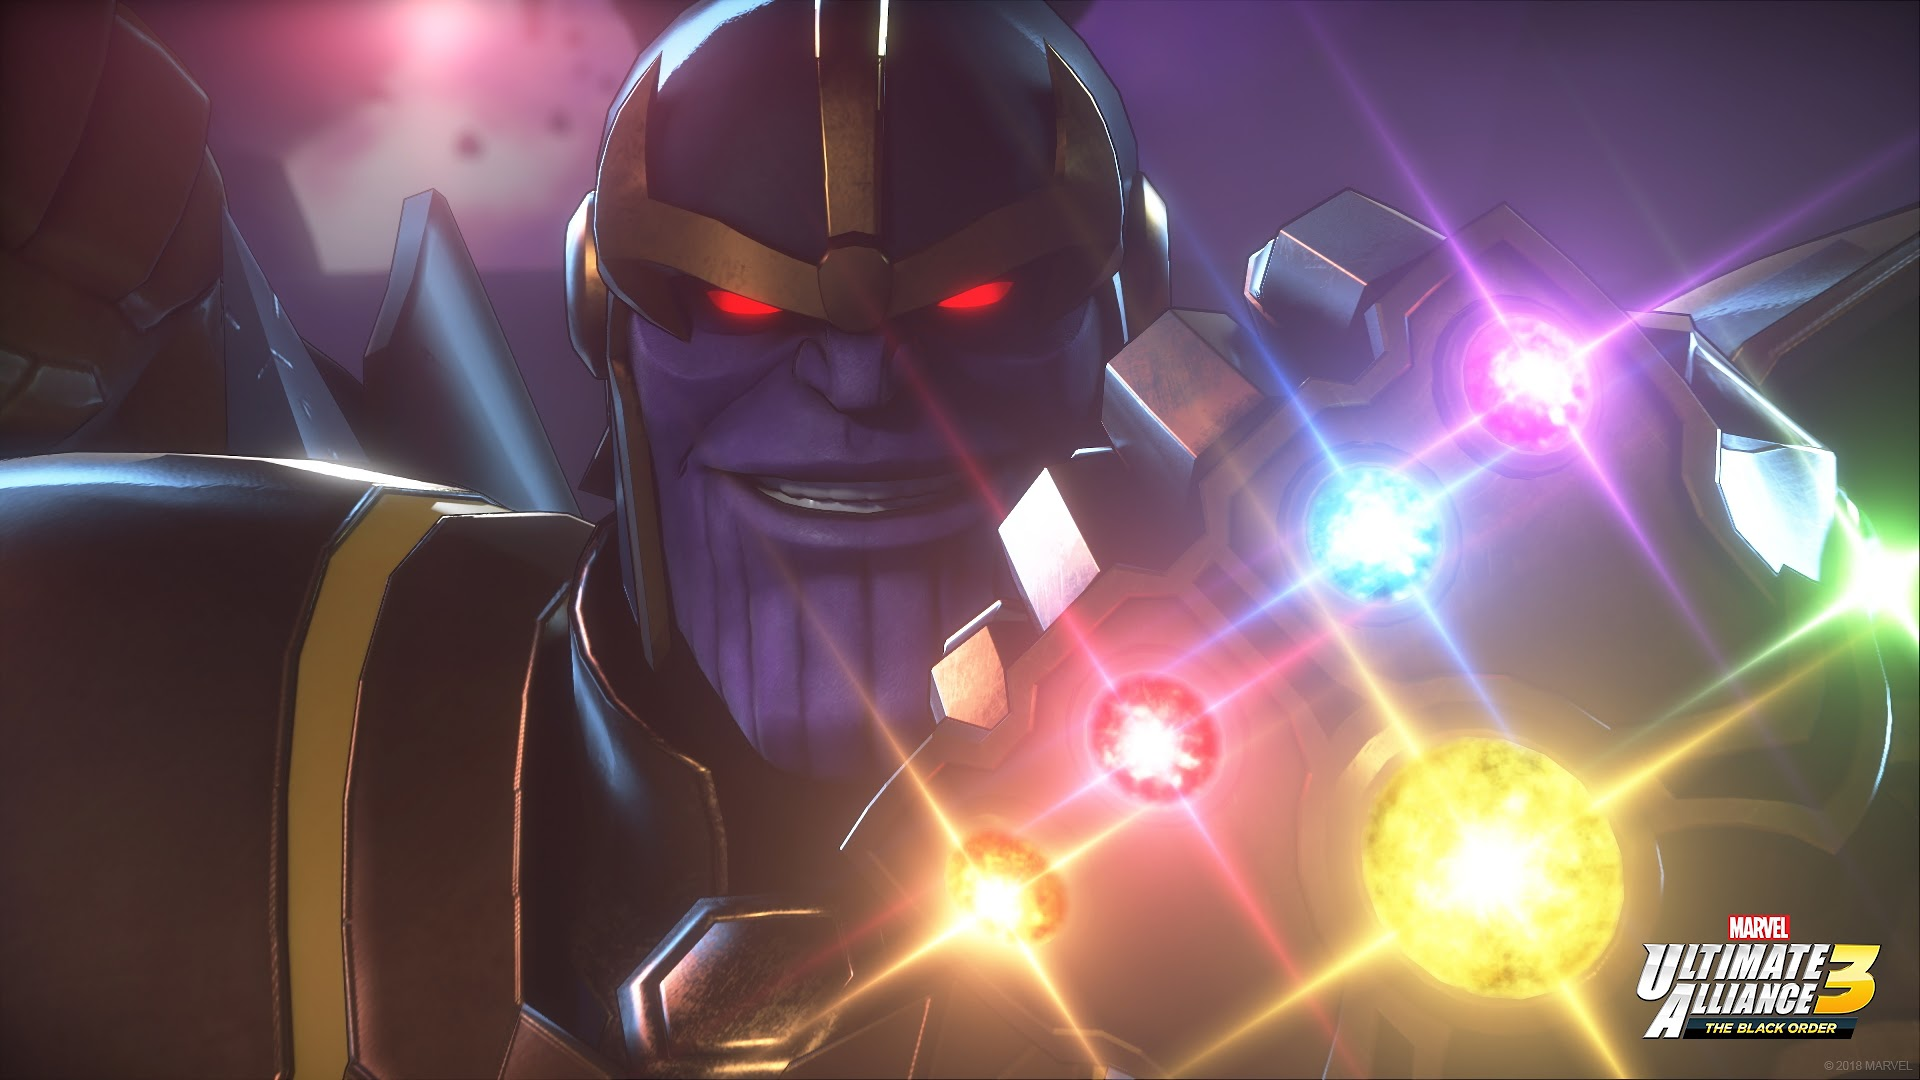 Marvel Ultimate Alliance 3: Le differenze con Infinity War ed Endgame